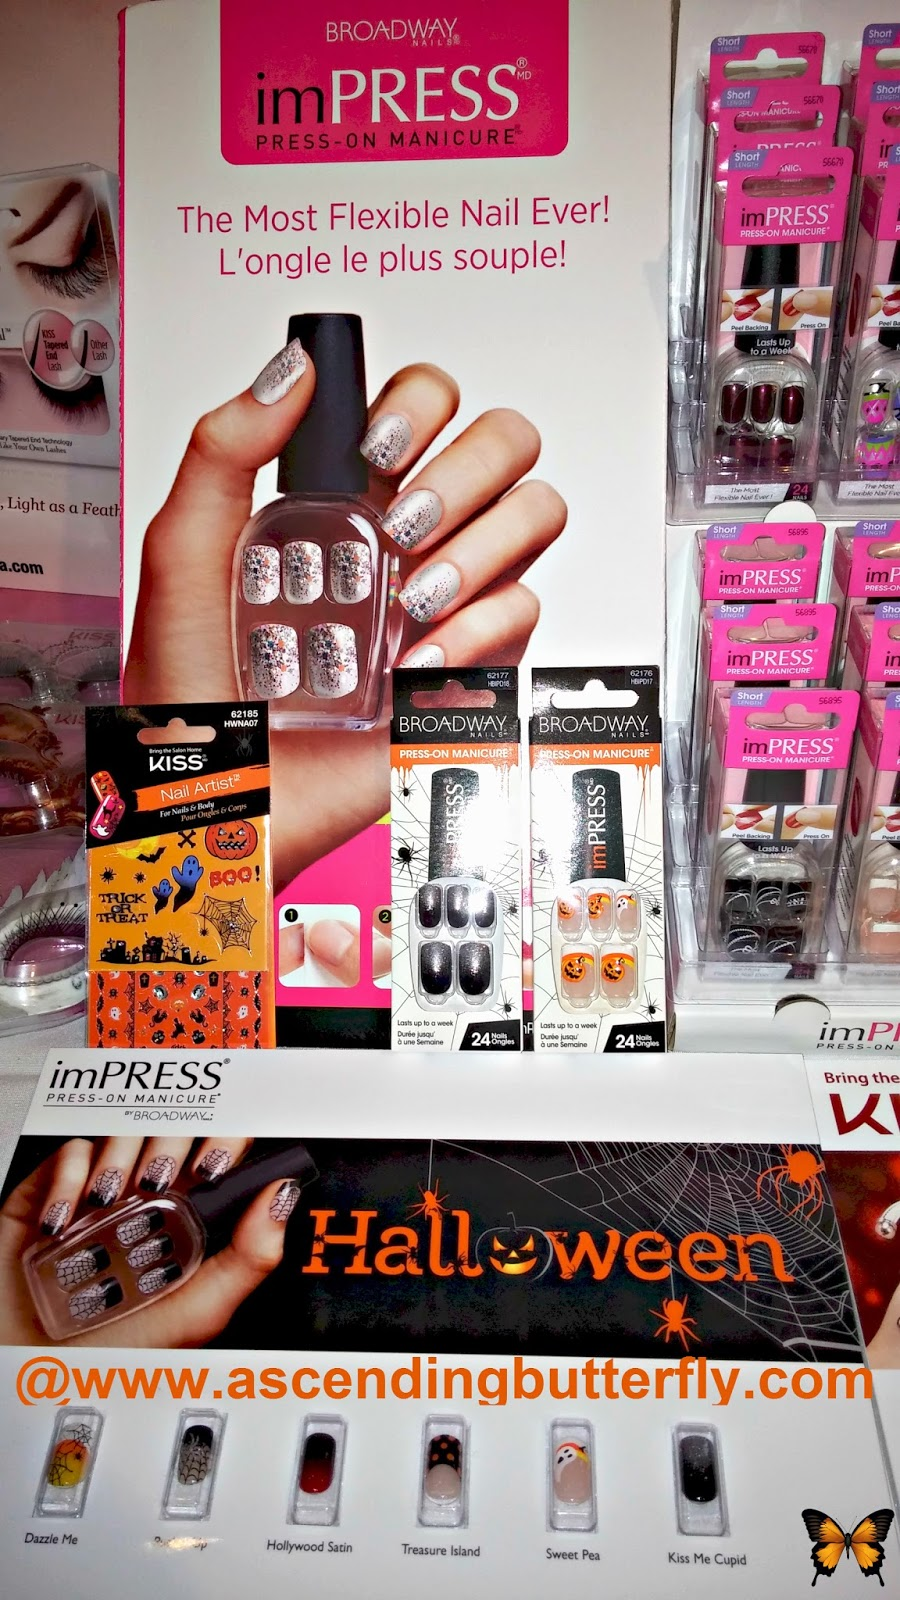 KISS Products imPRESS Press-On Manicure at beautypress September 2014 Spotlight Day